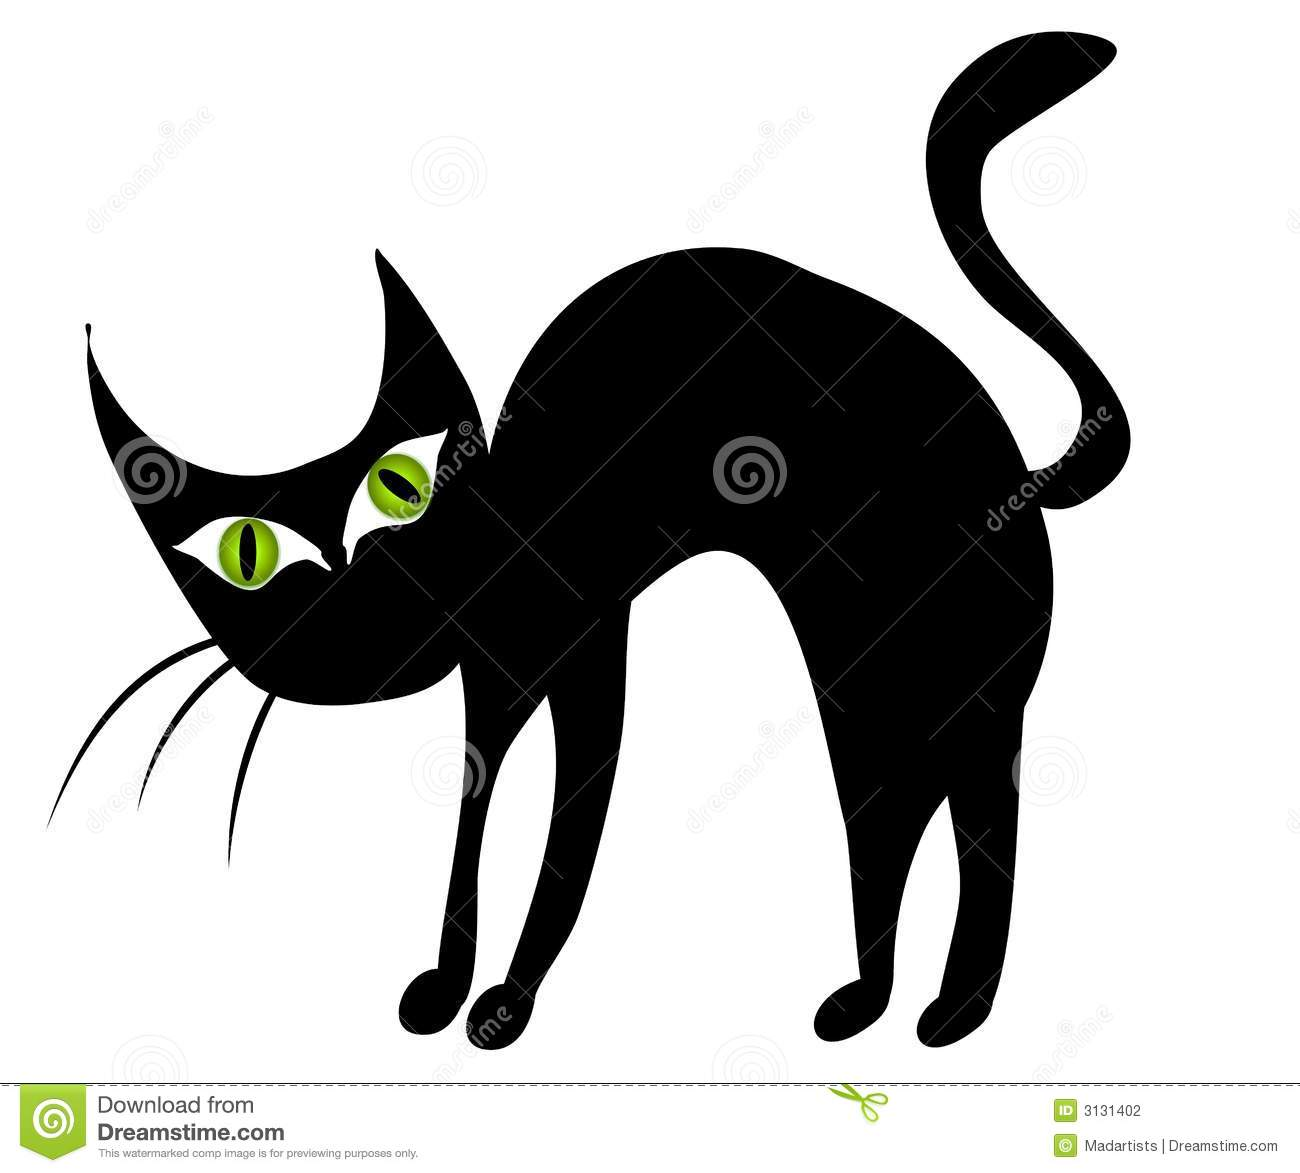 Isolated black cat clip art 2 illustration megapixl jpg